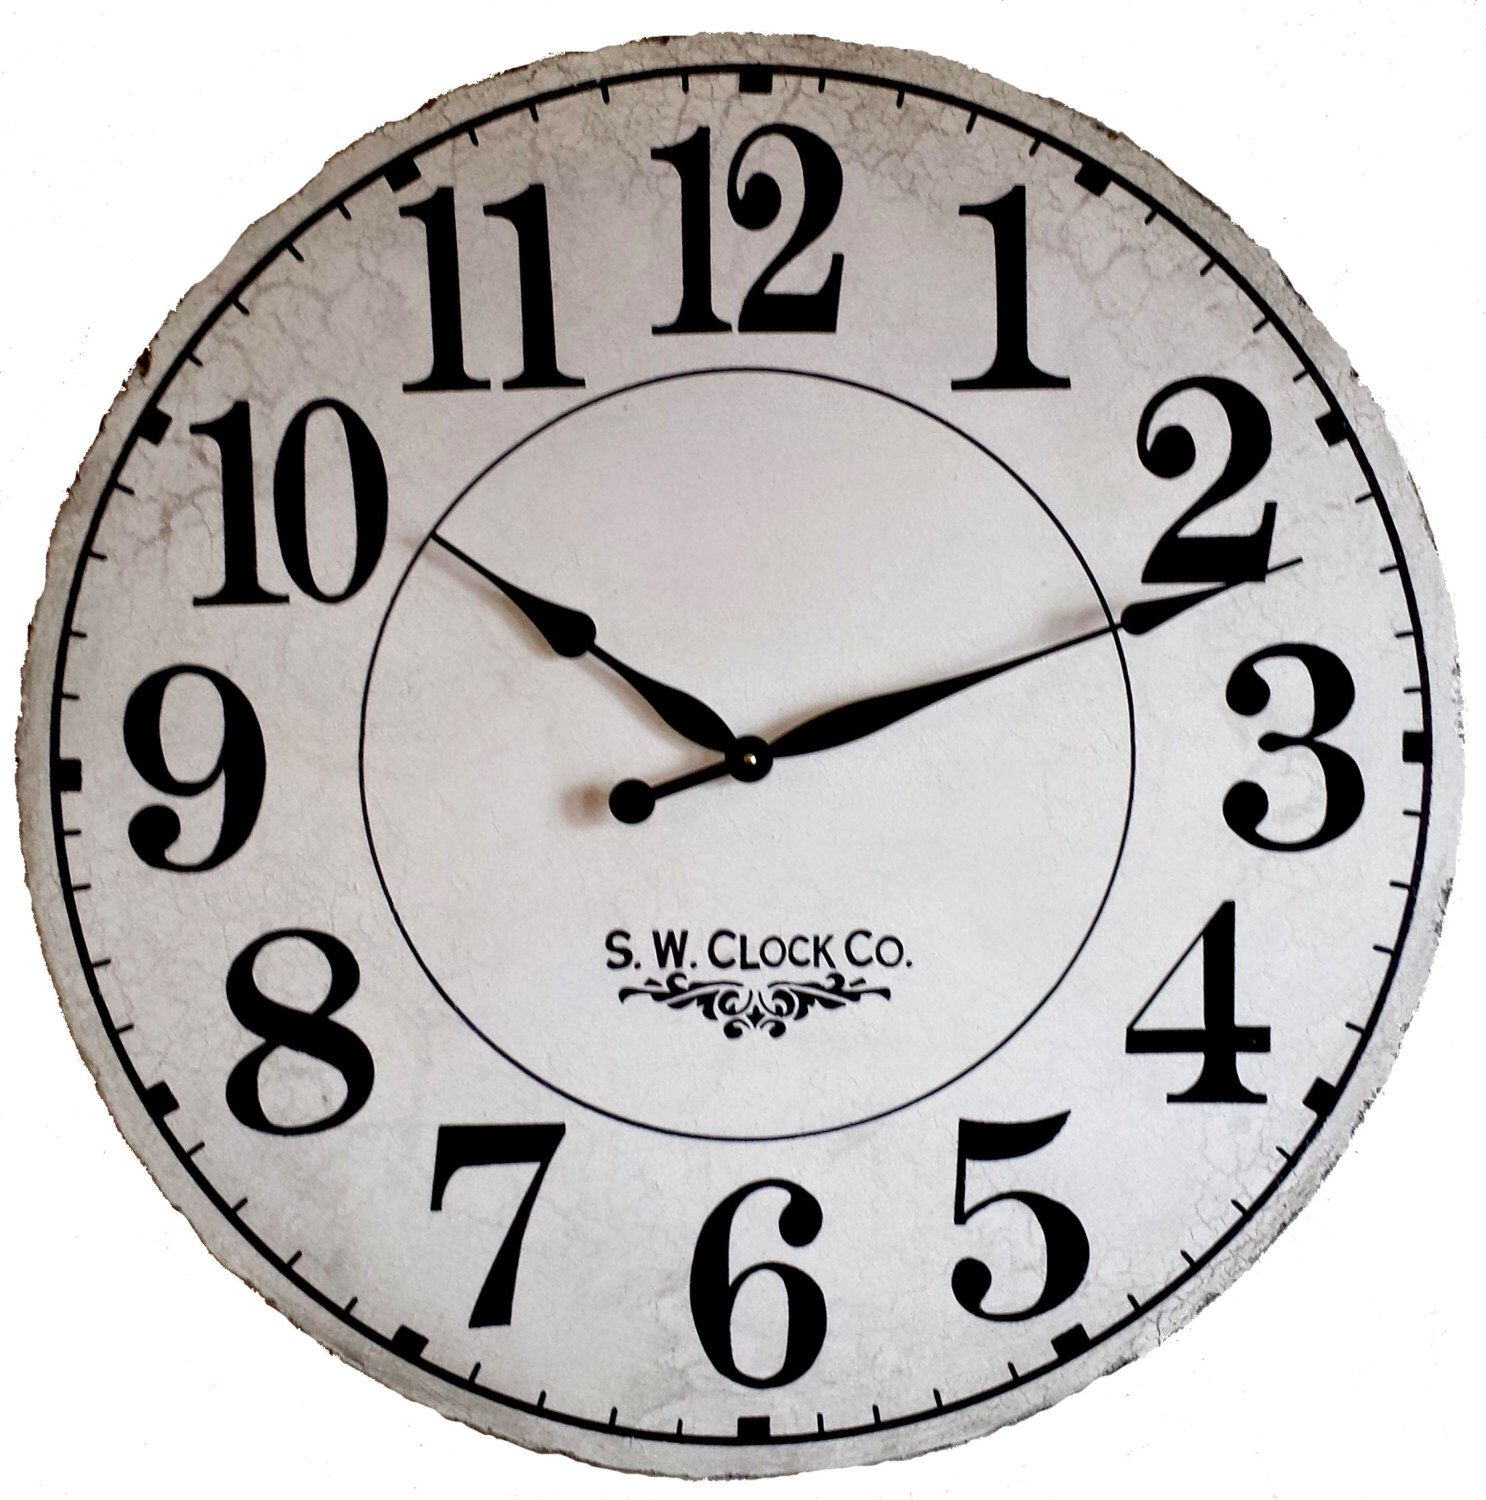 24 inch french grand gallery large wall clock antique style big 24 inch french grand gallery large wall clock antique style big cream crackle off white amipublicfo Choice Image